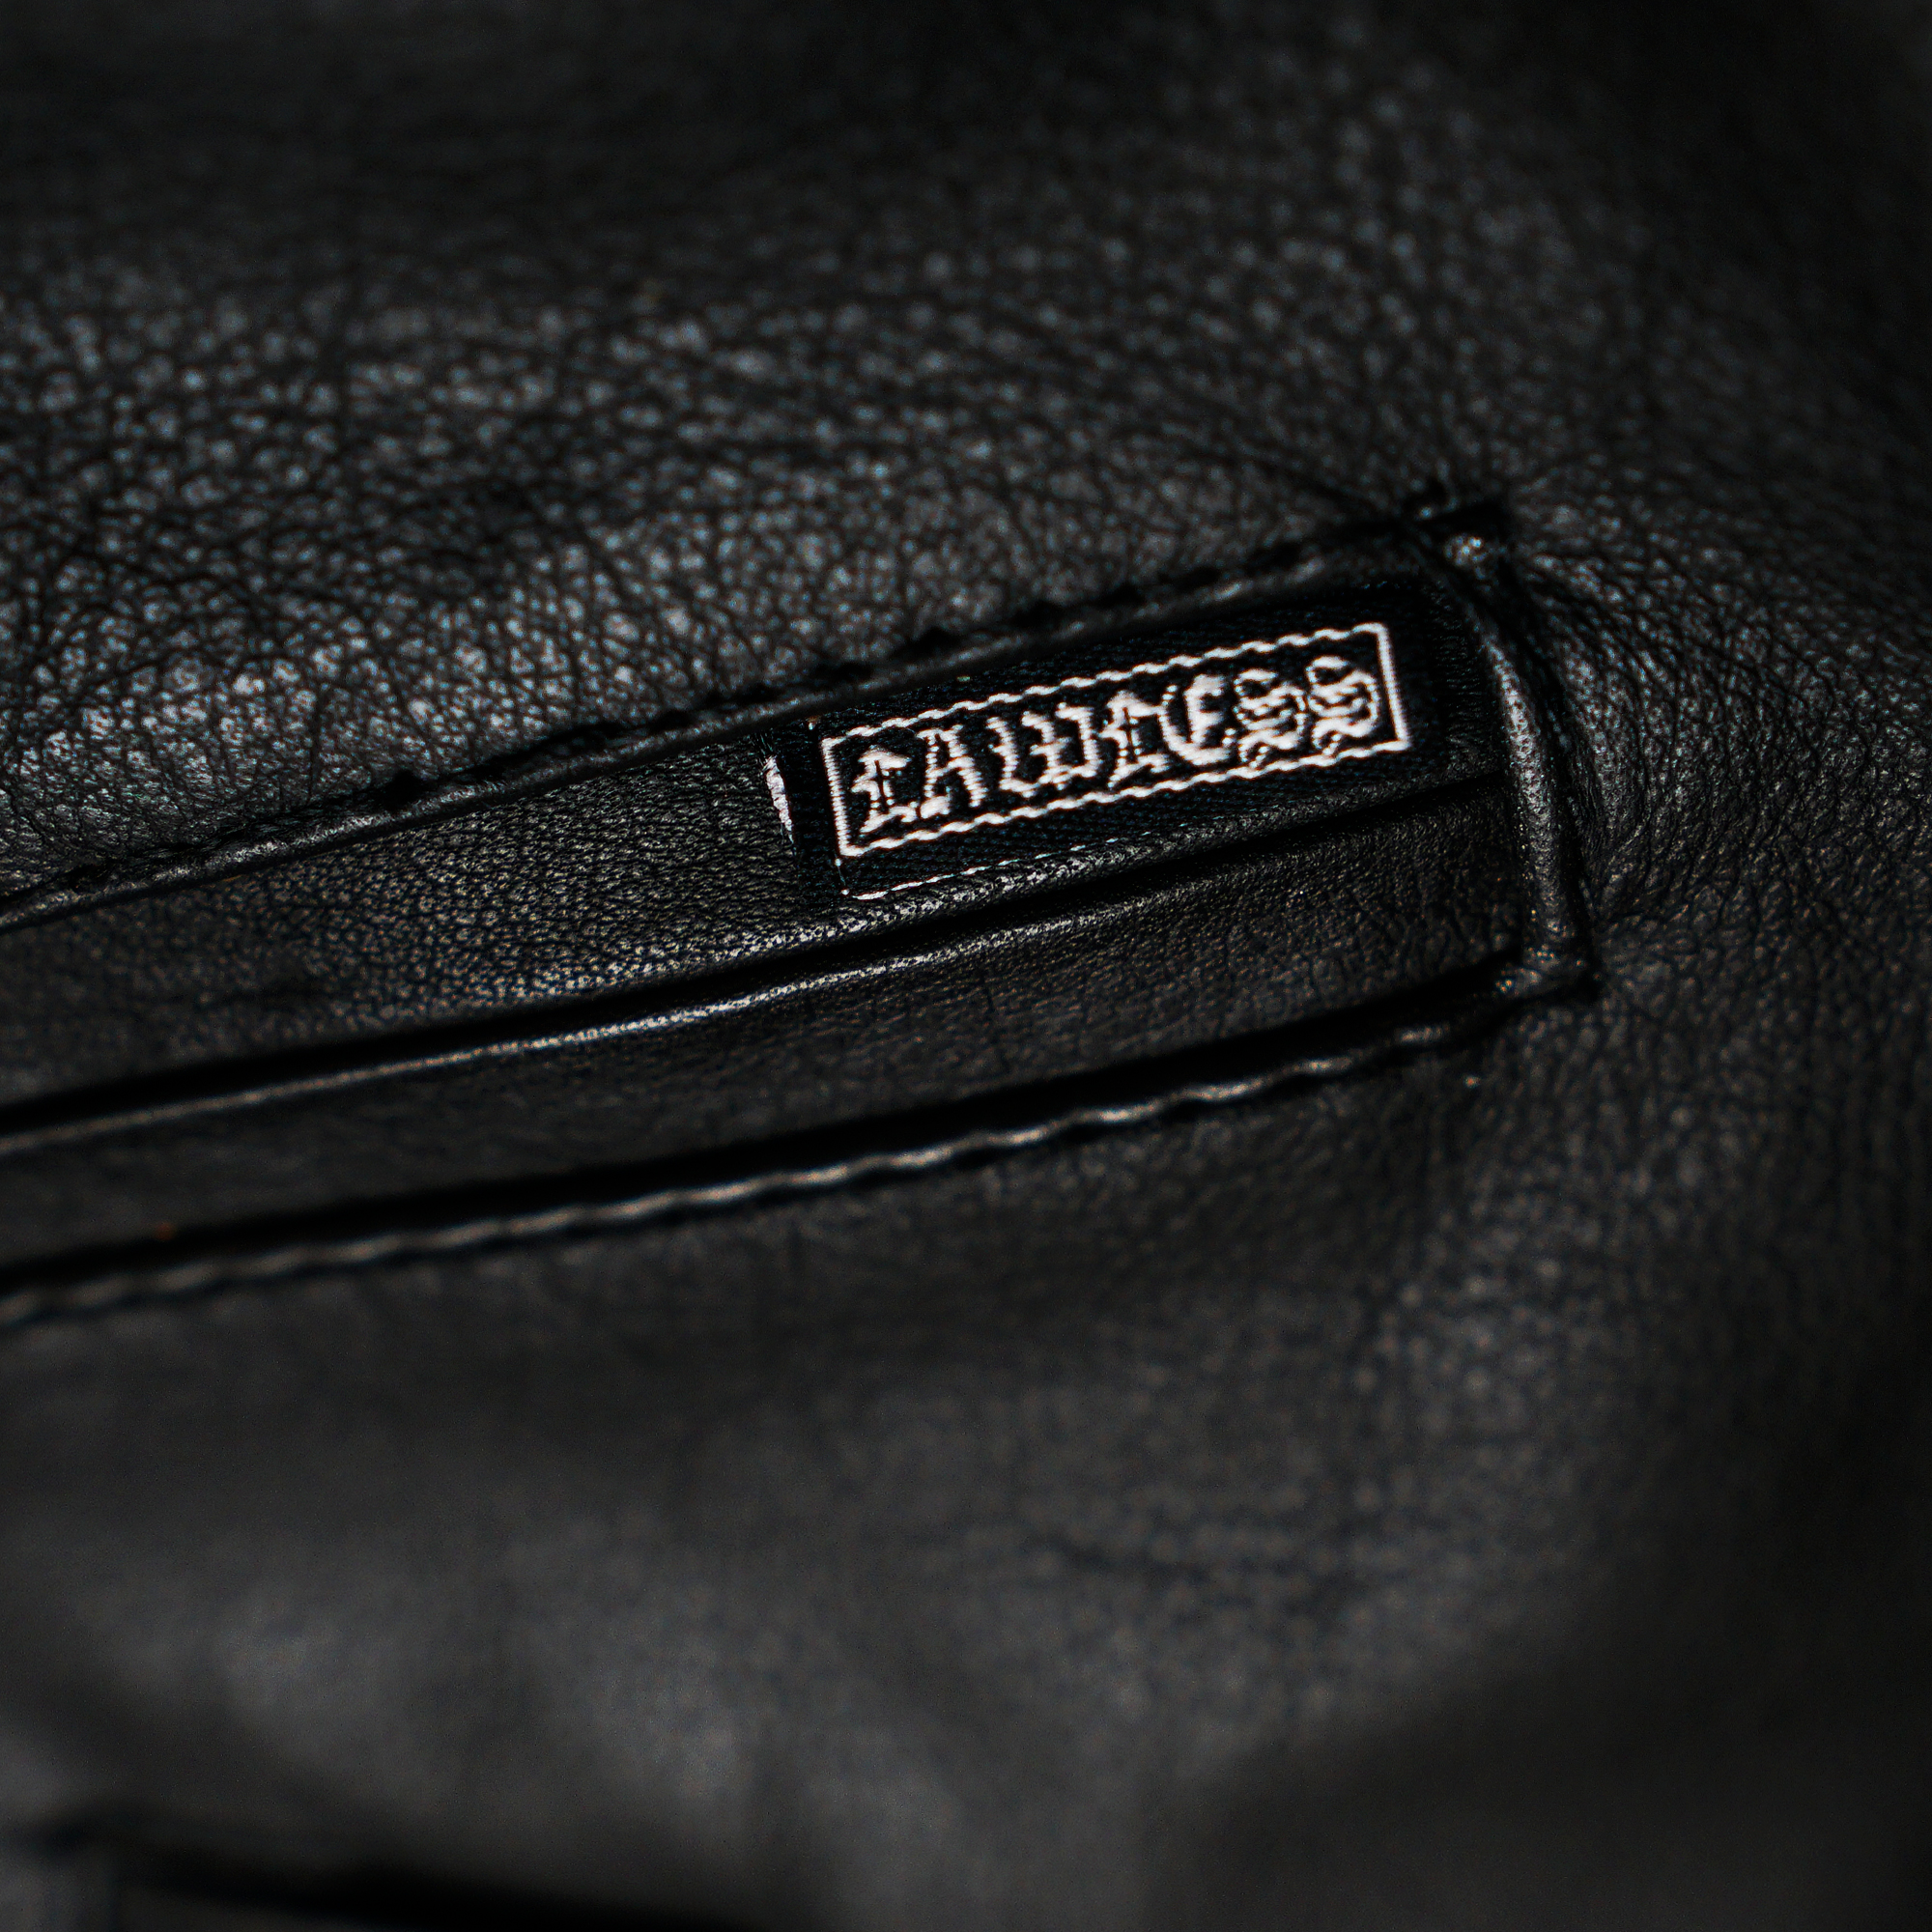 lawless_leather_jacket_detail